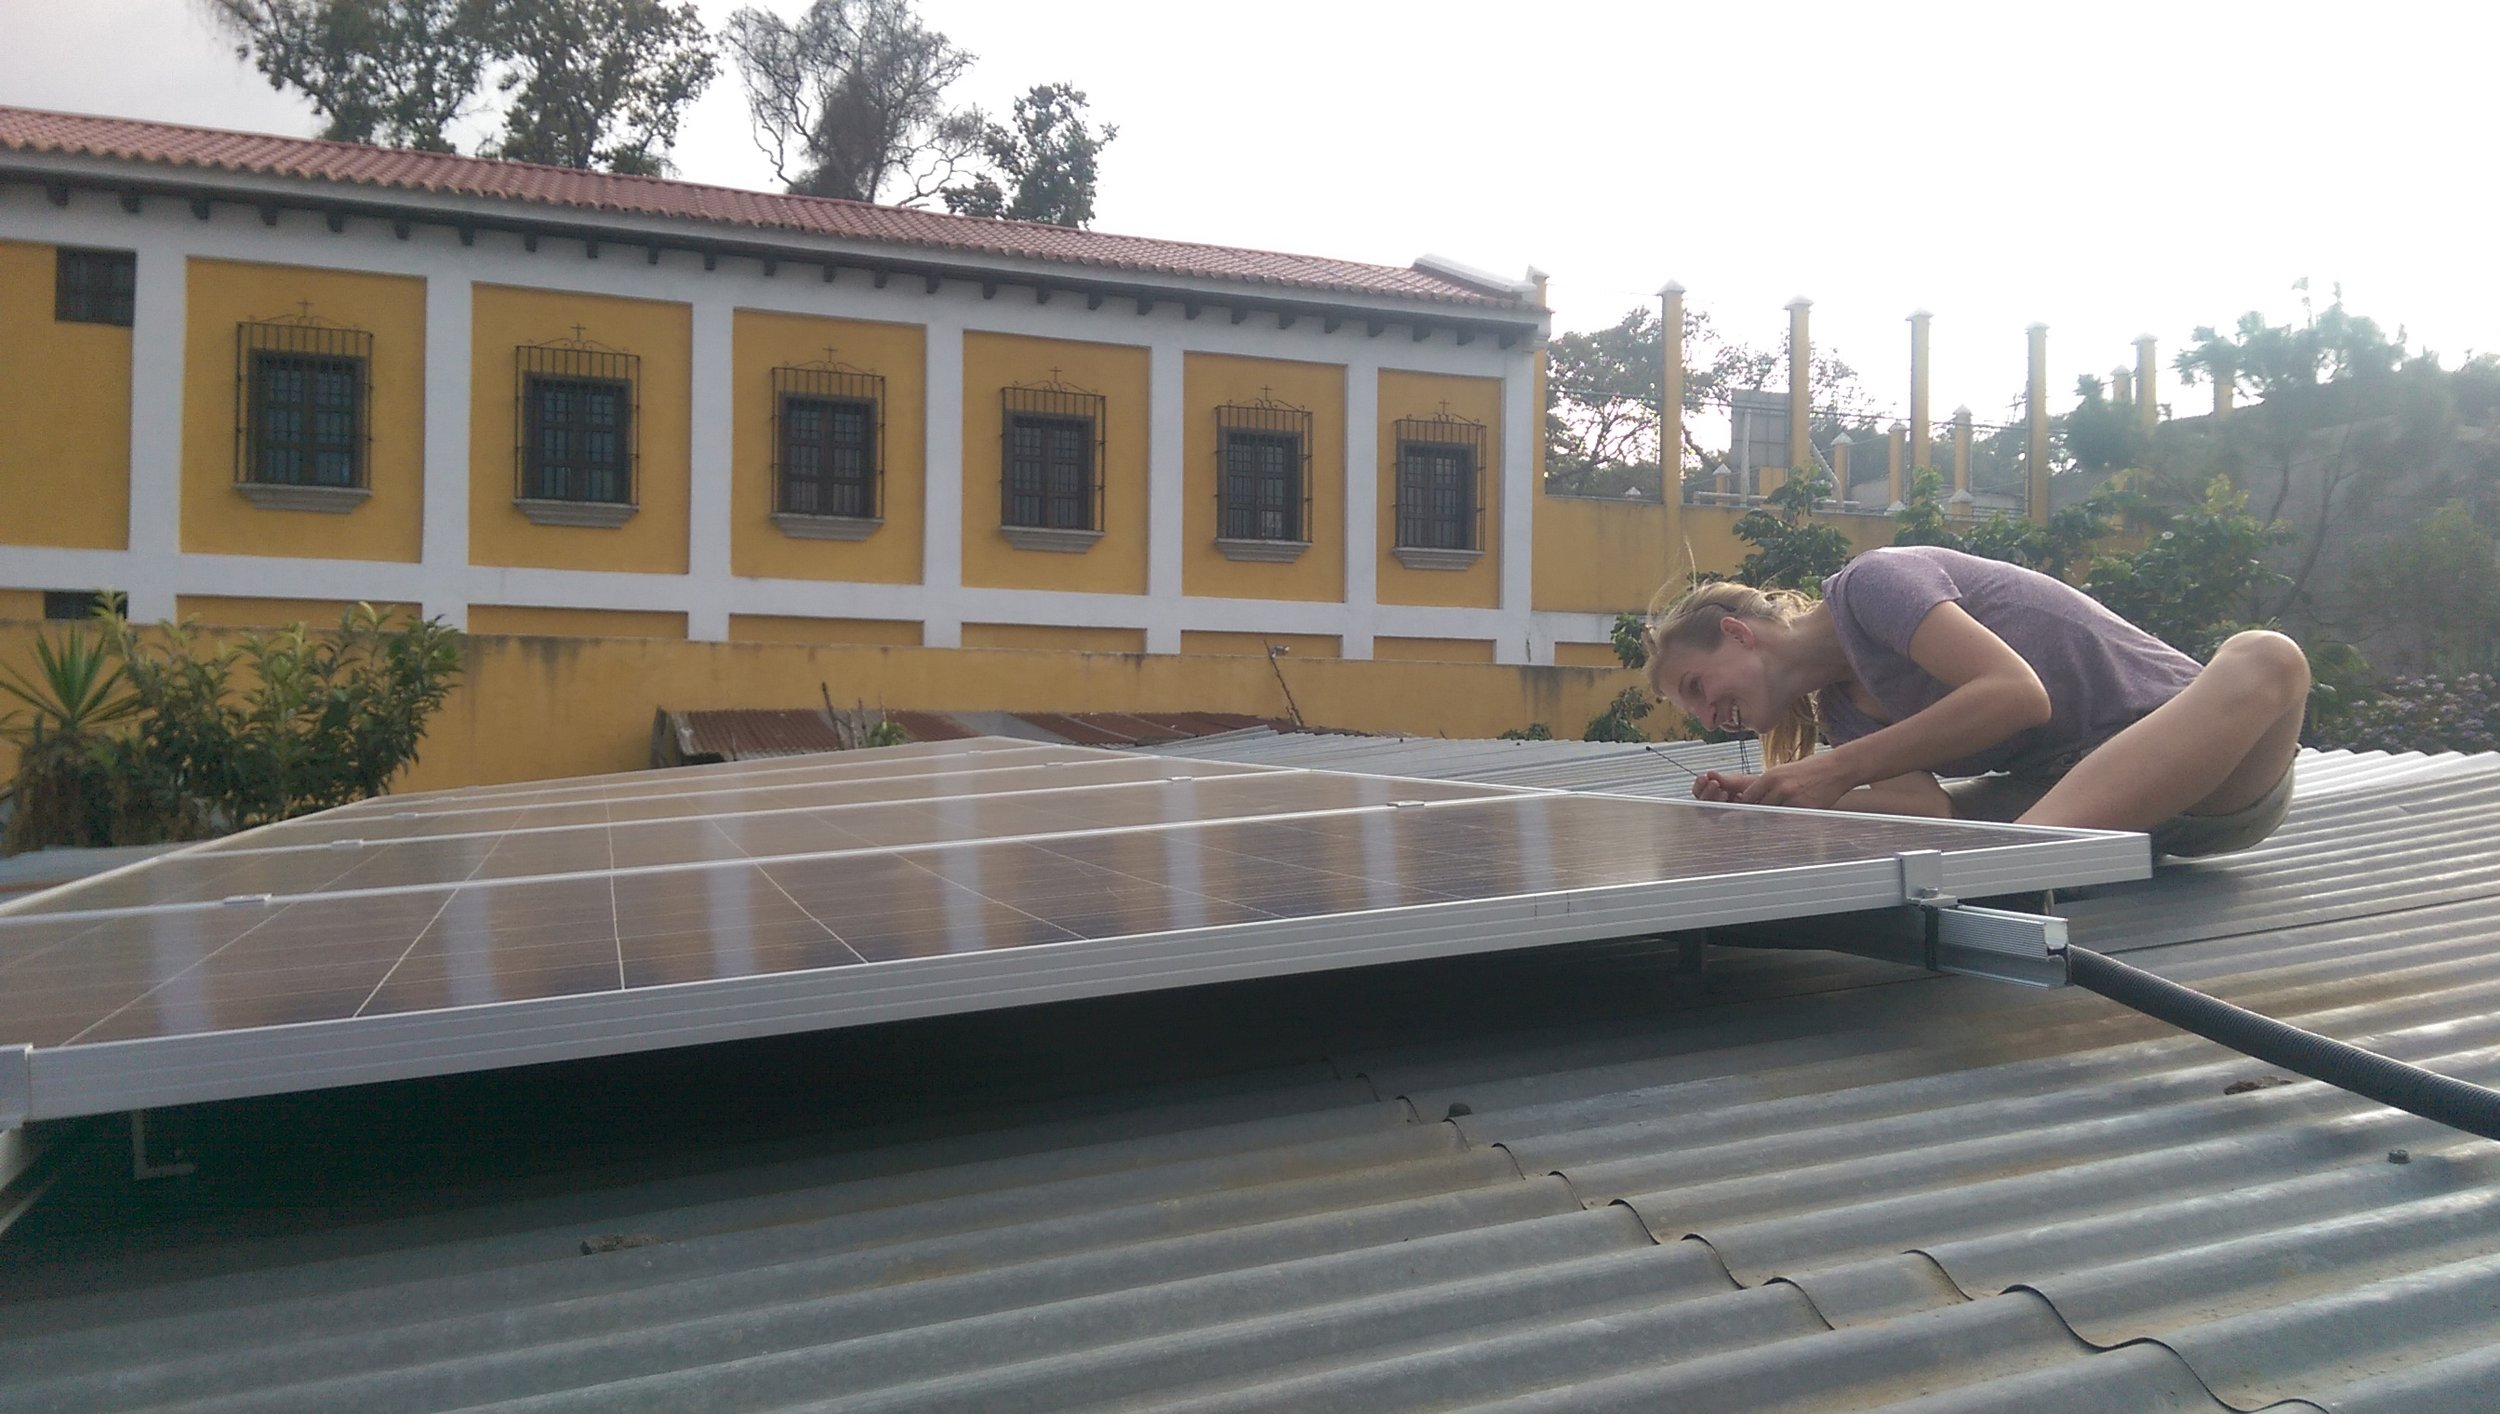 Linda from Lux Aeterna installing three new solar panels on the roof of the dry mill.